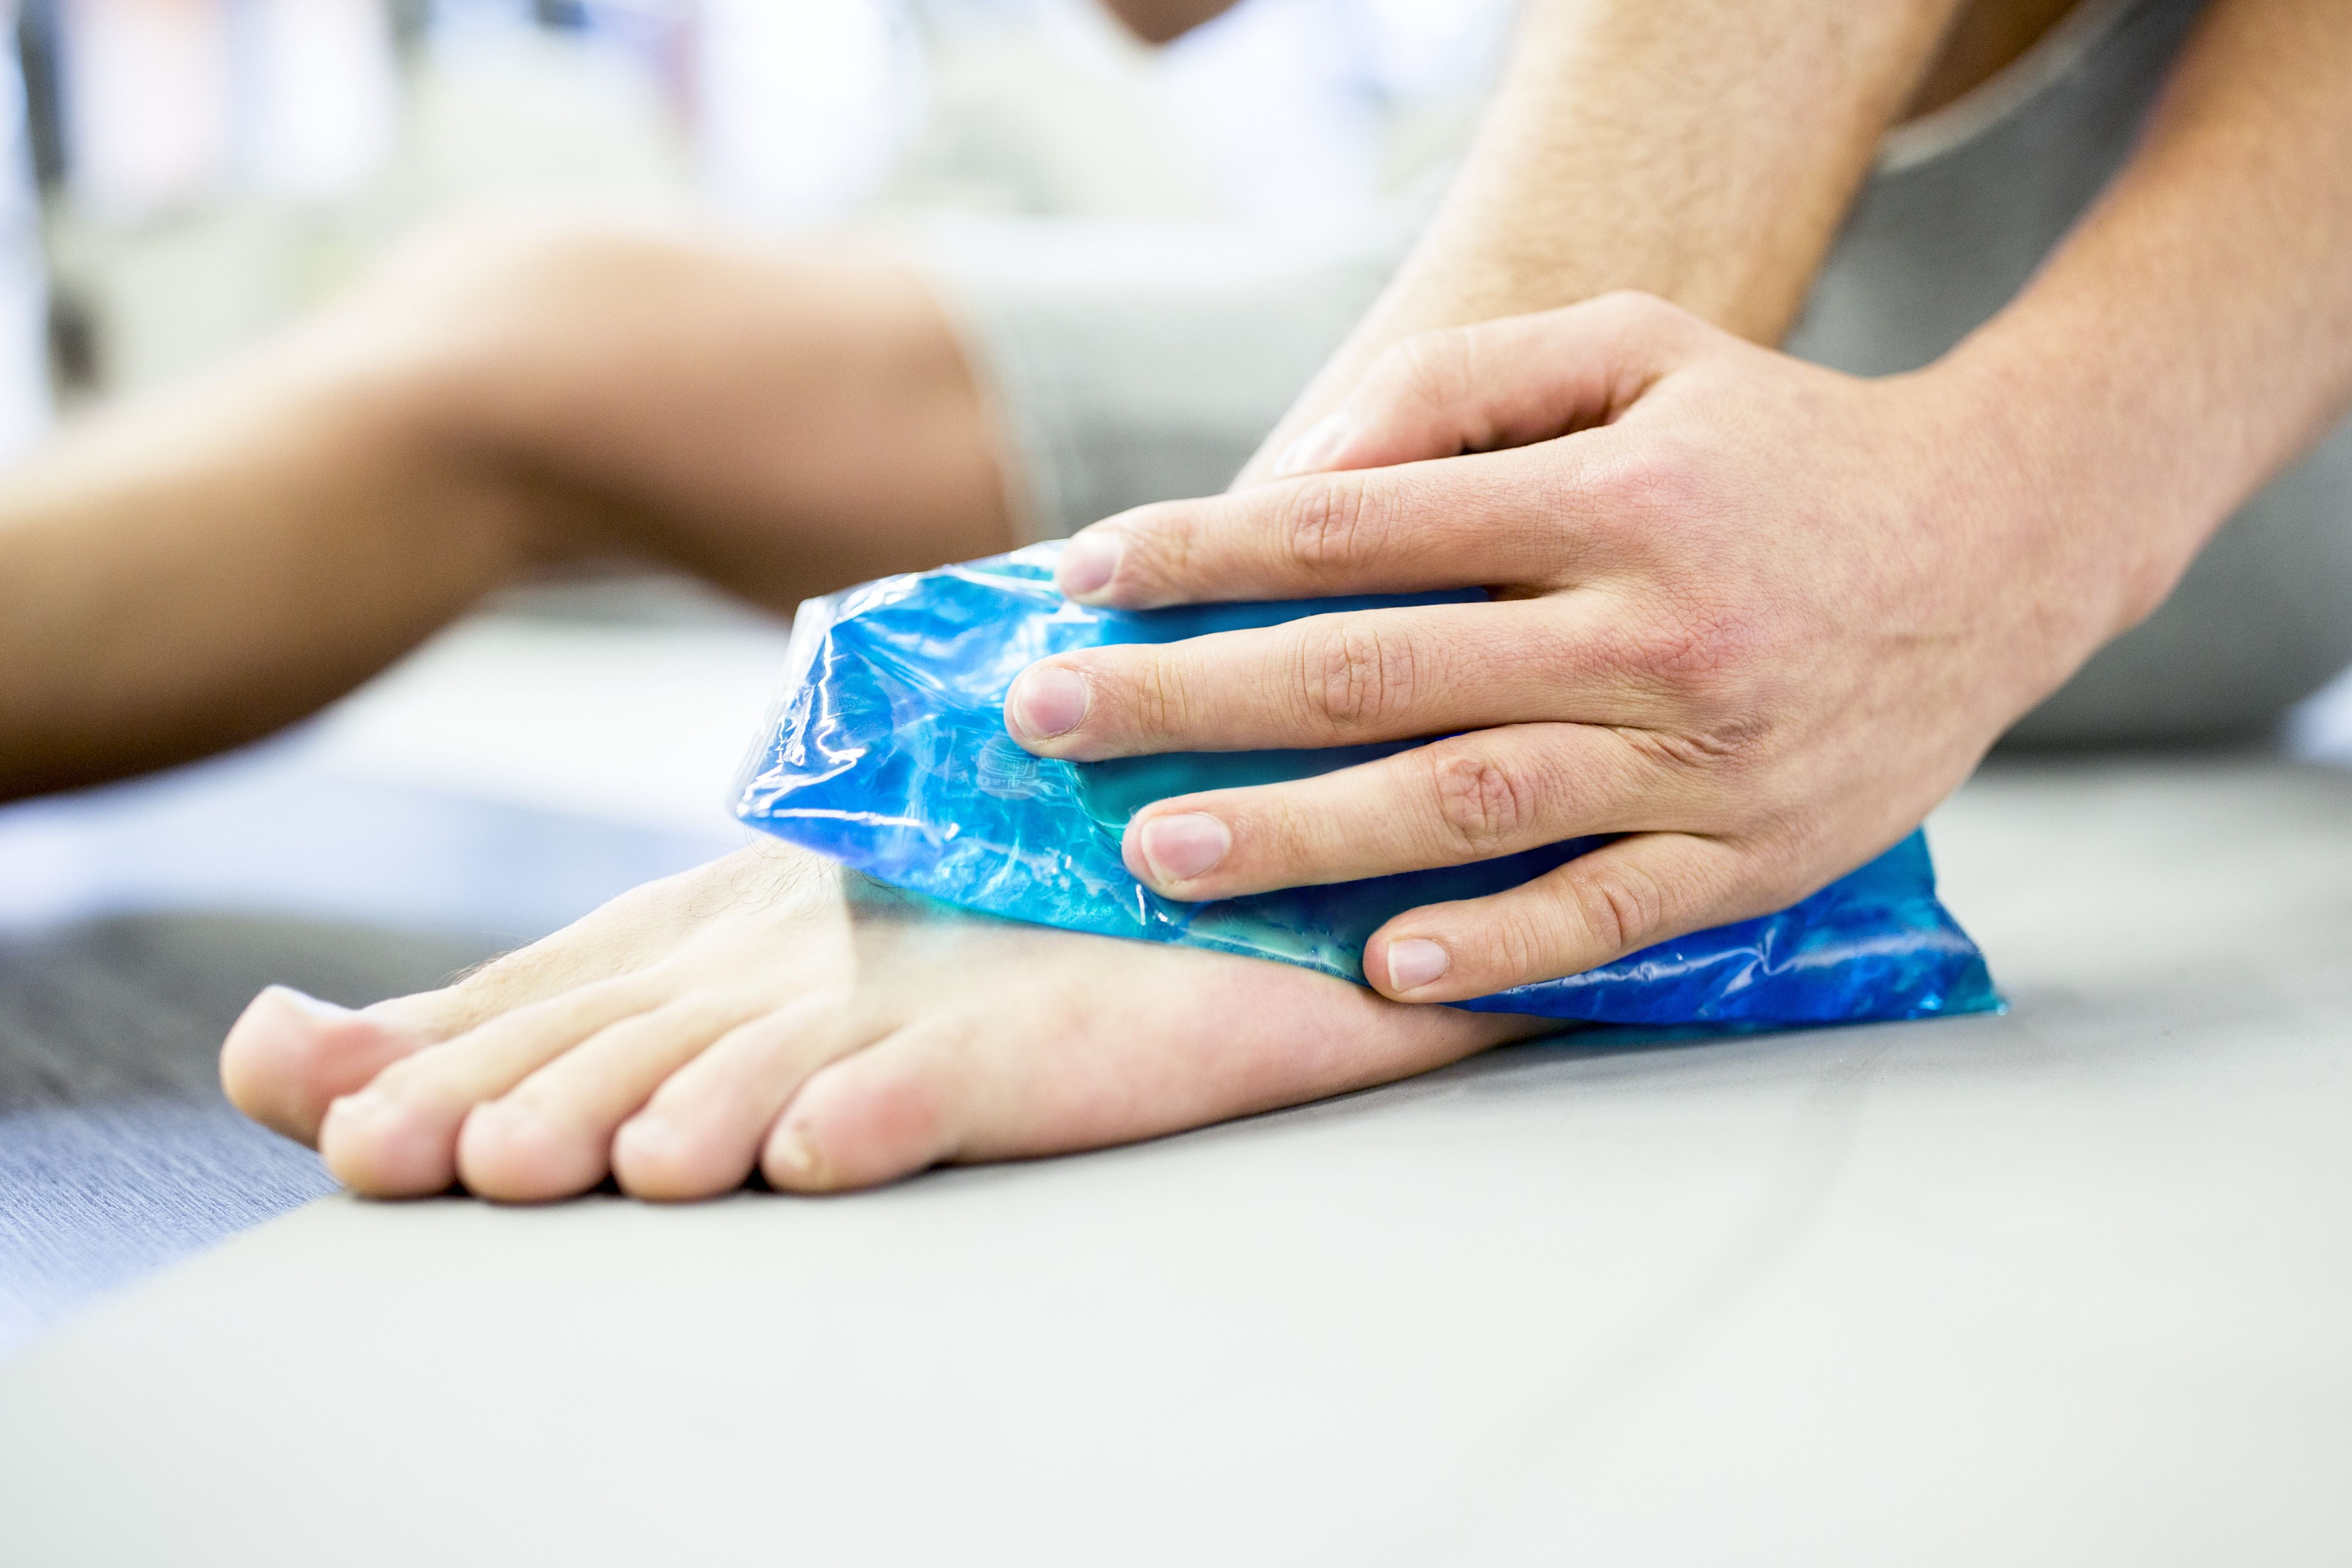 How to Self-Treat Running Injuries